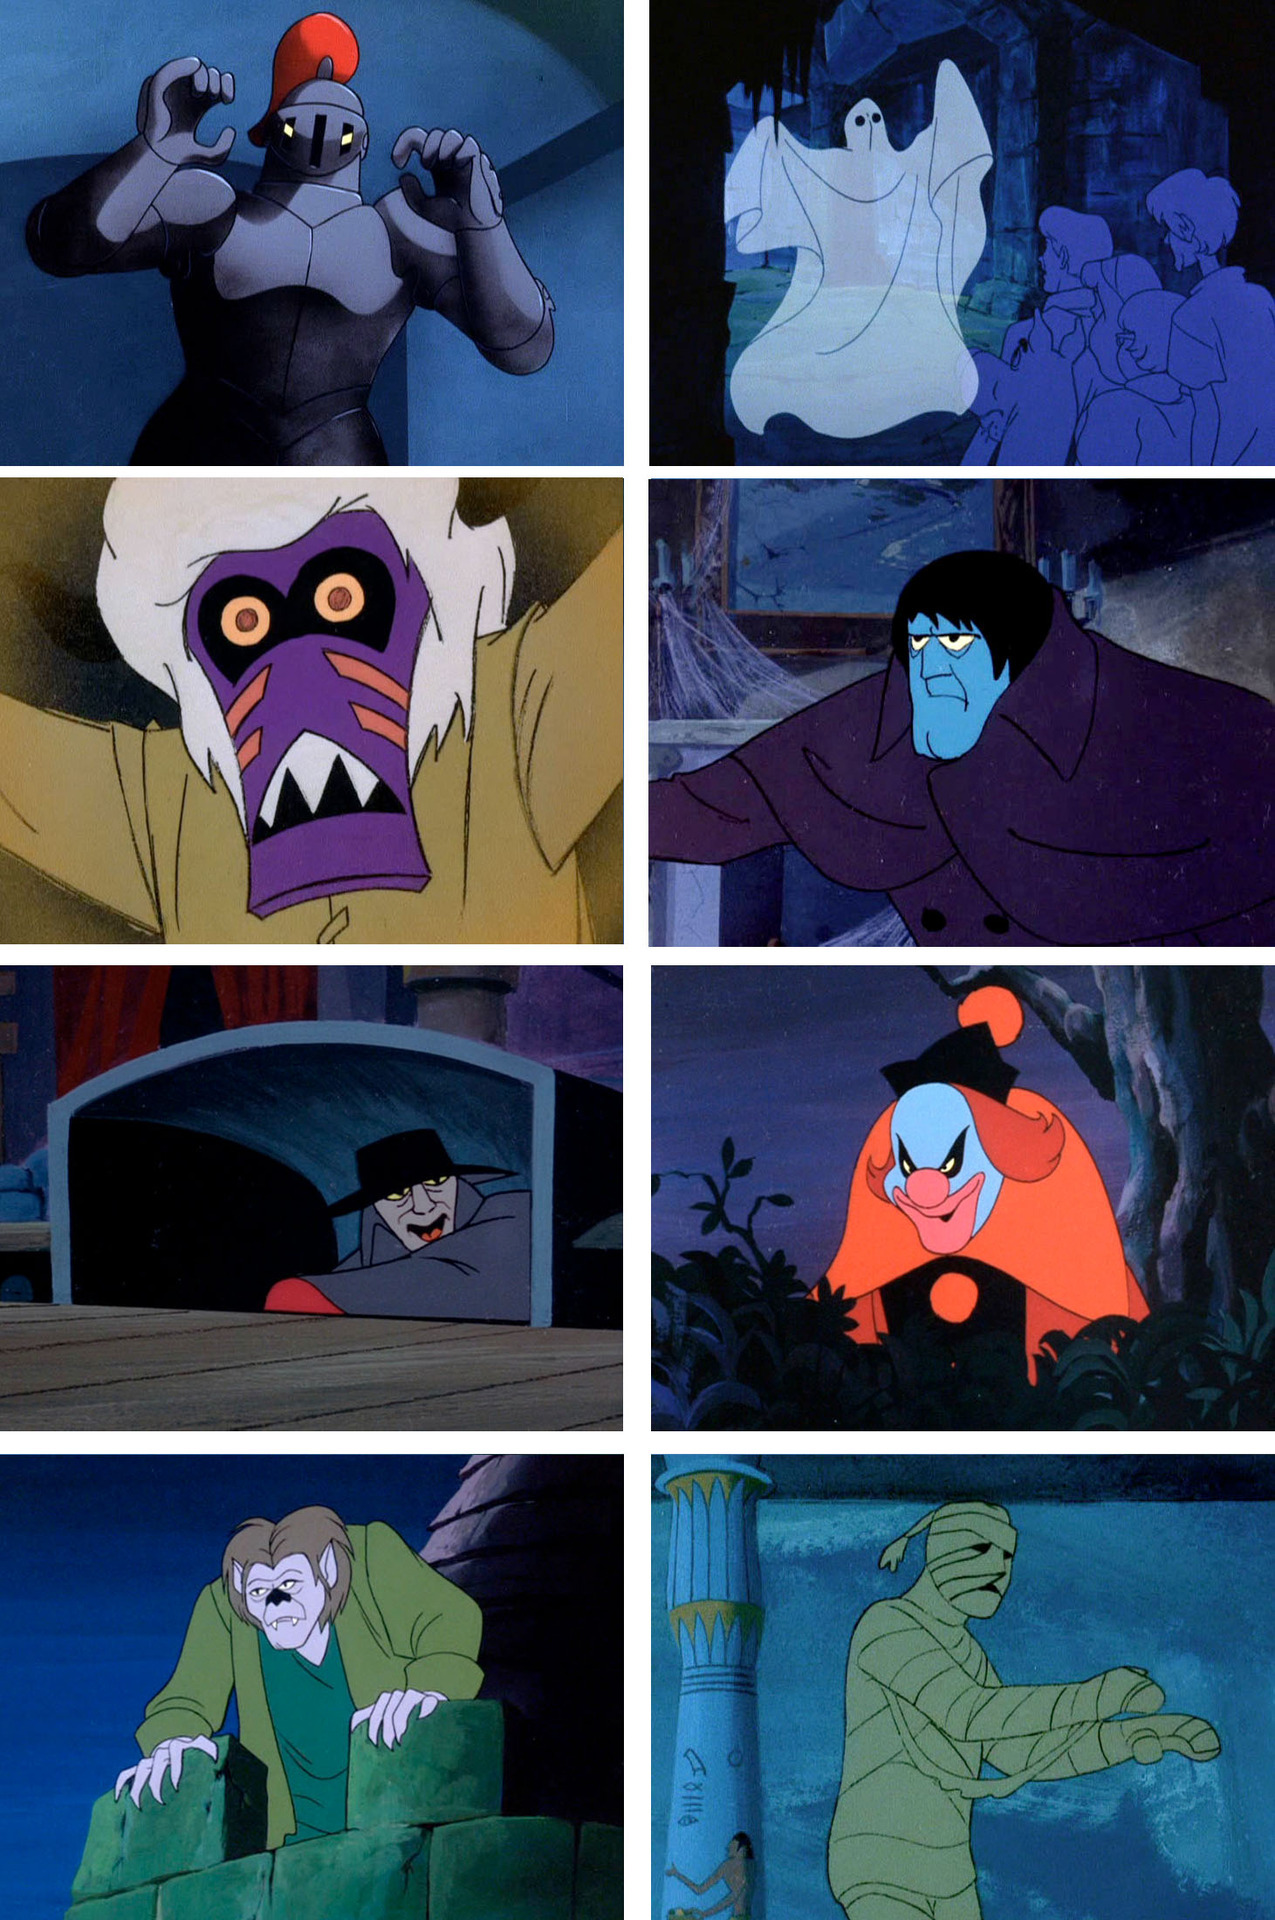 More Like A Justice League, Scooby Doo! Where are You ...